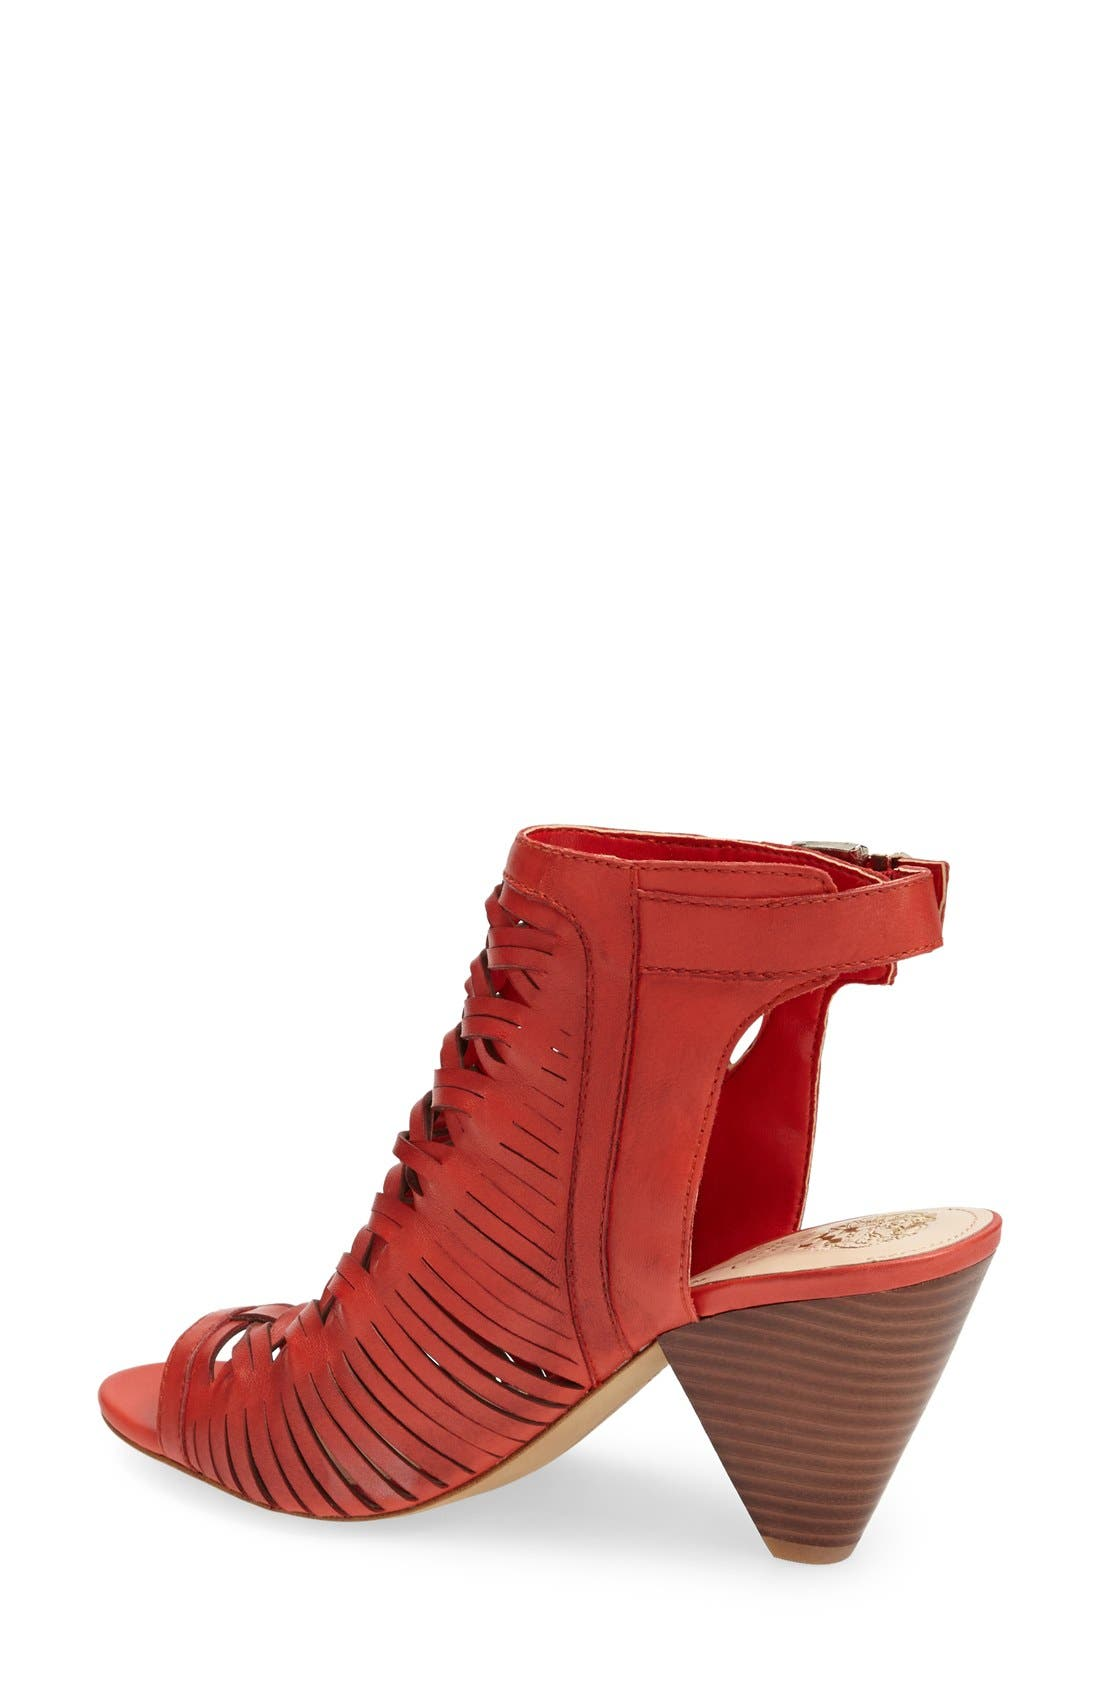 Alternate Image 2  - Vince Camuto 'Emore' Leather Sandal (Women) (Nordstrom Exclusive)